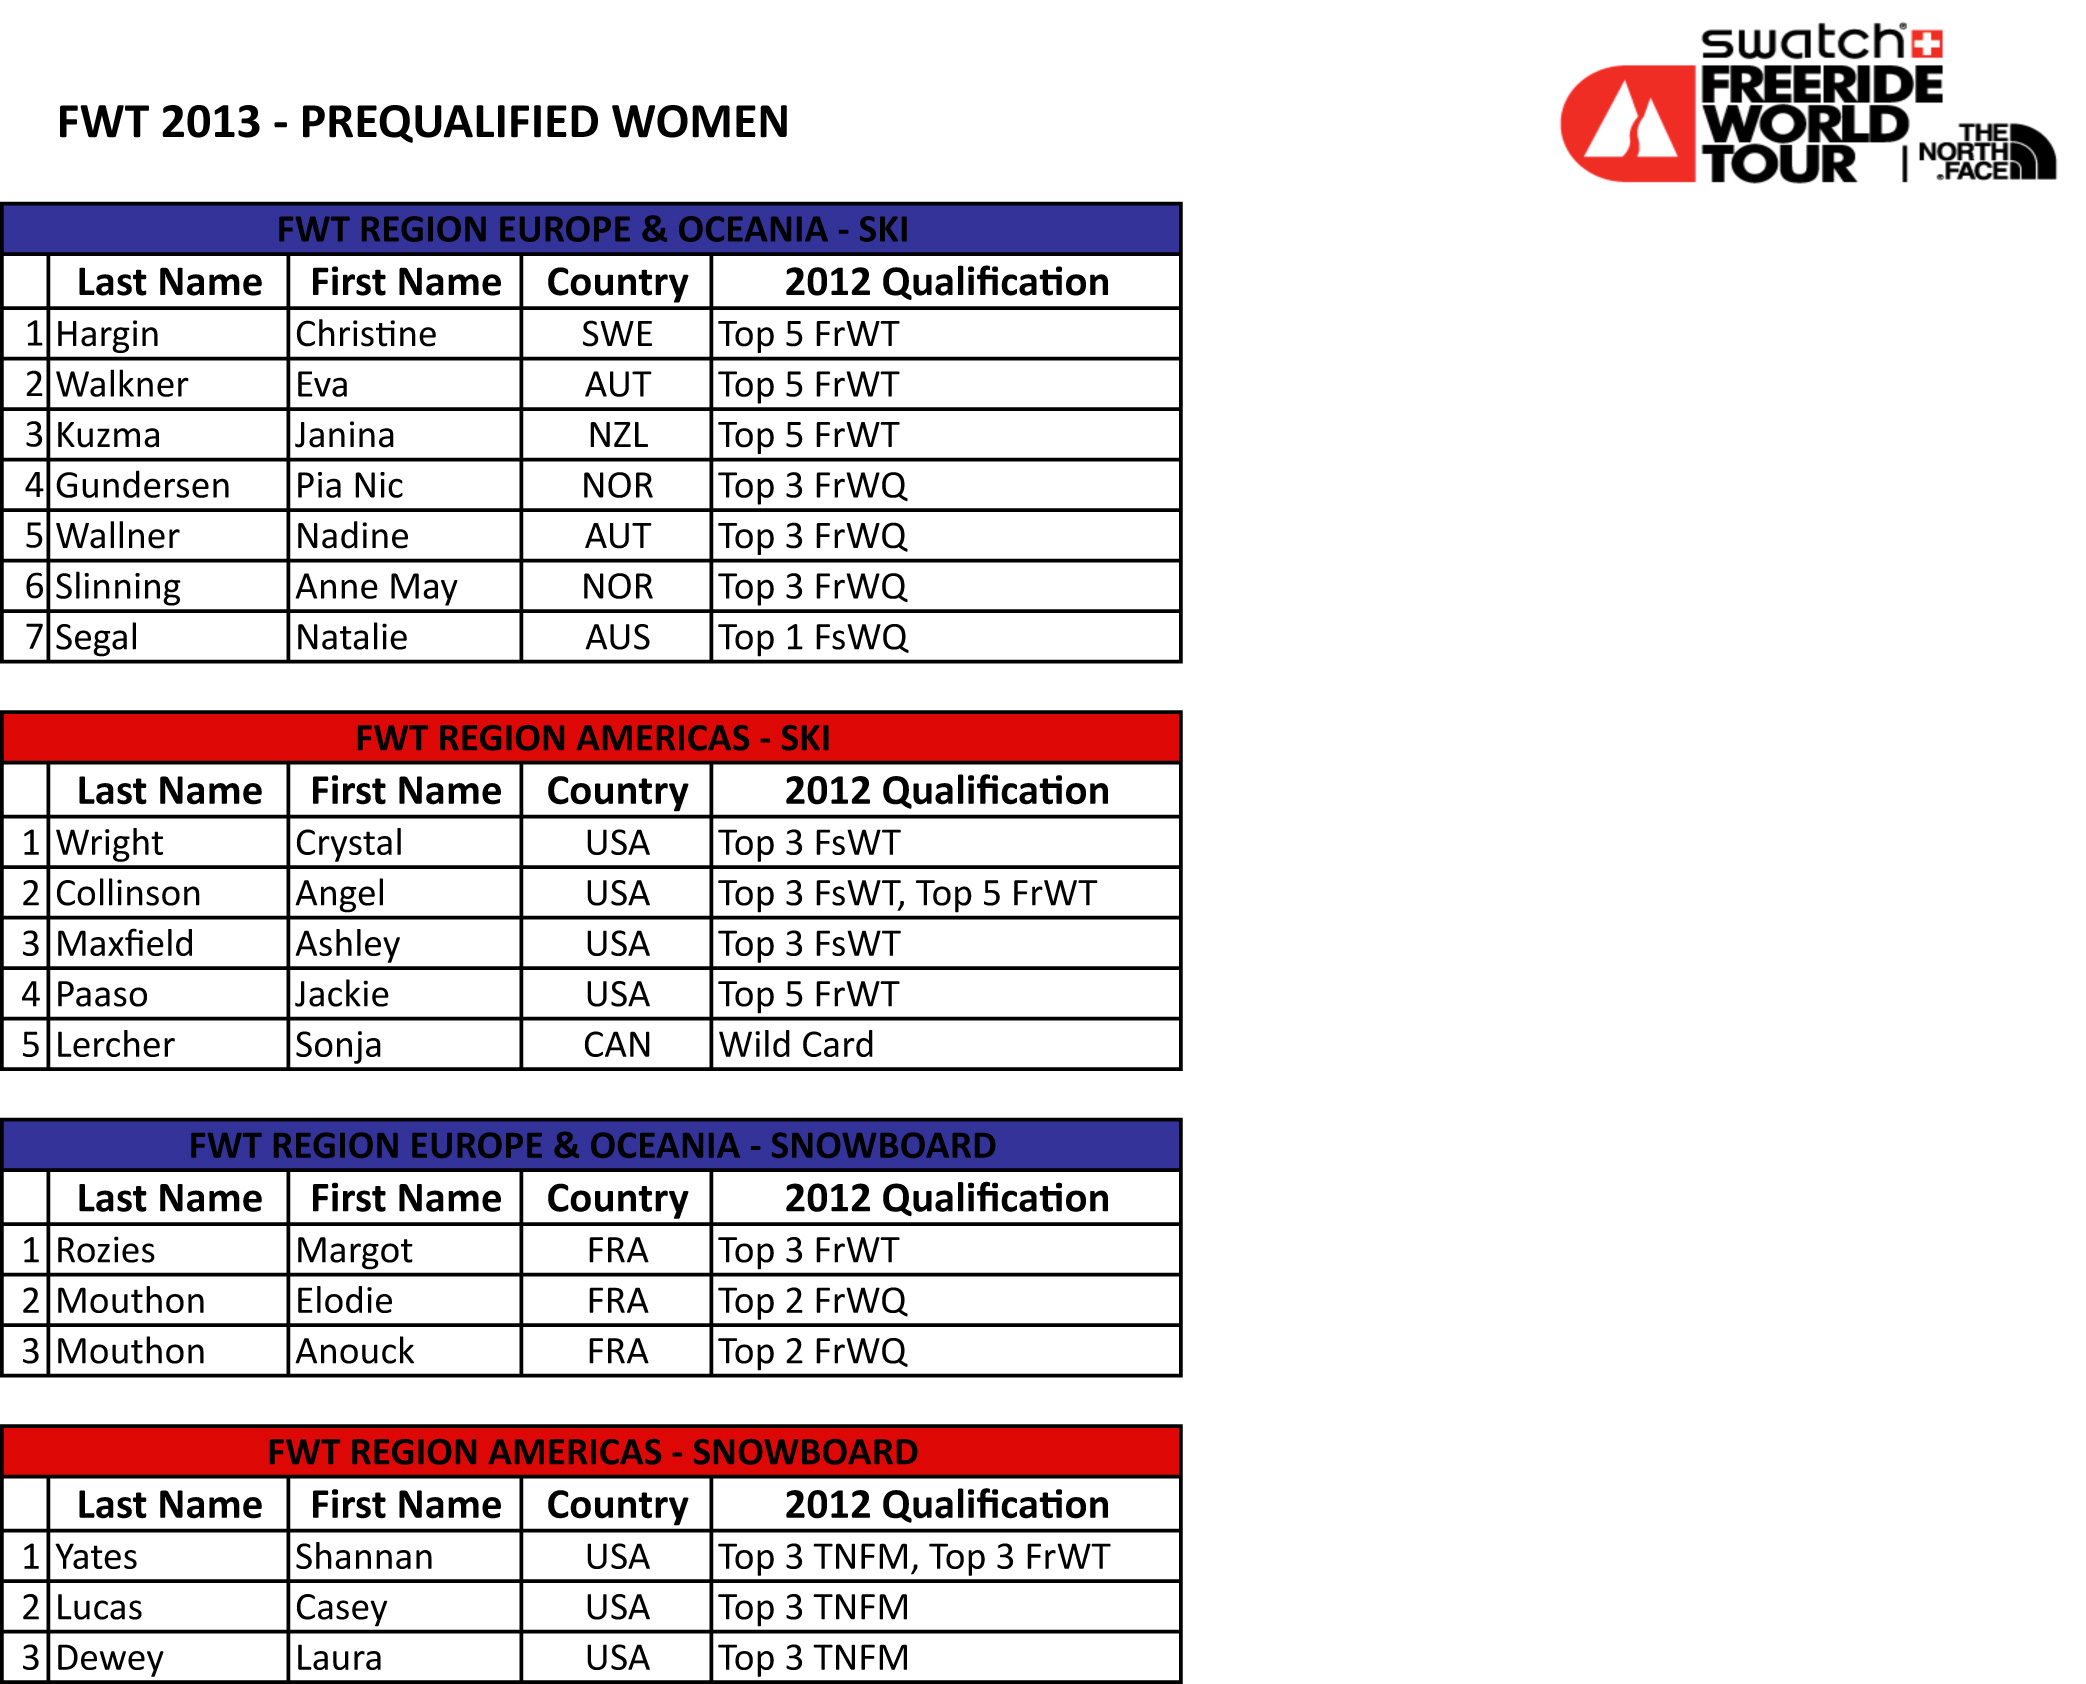 Freeride World Tour Qualified Riders list 2013 - women